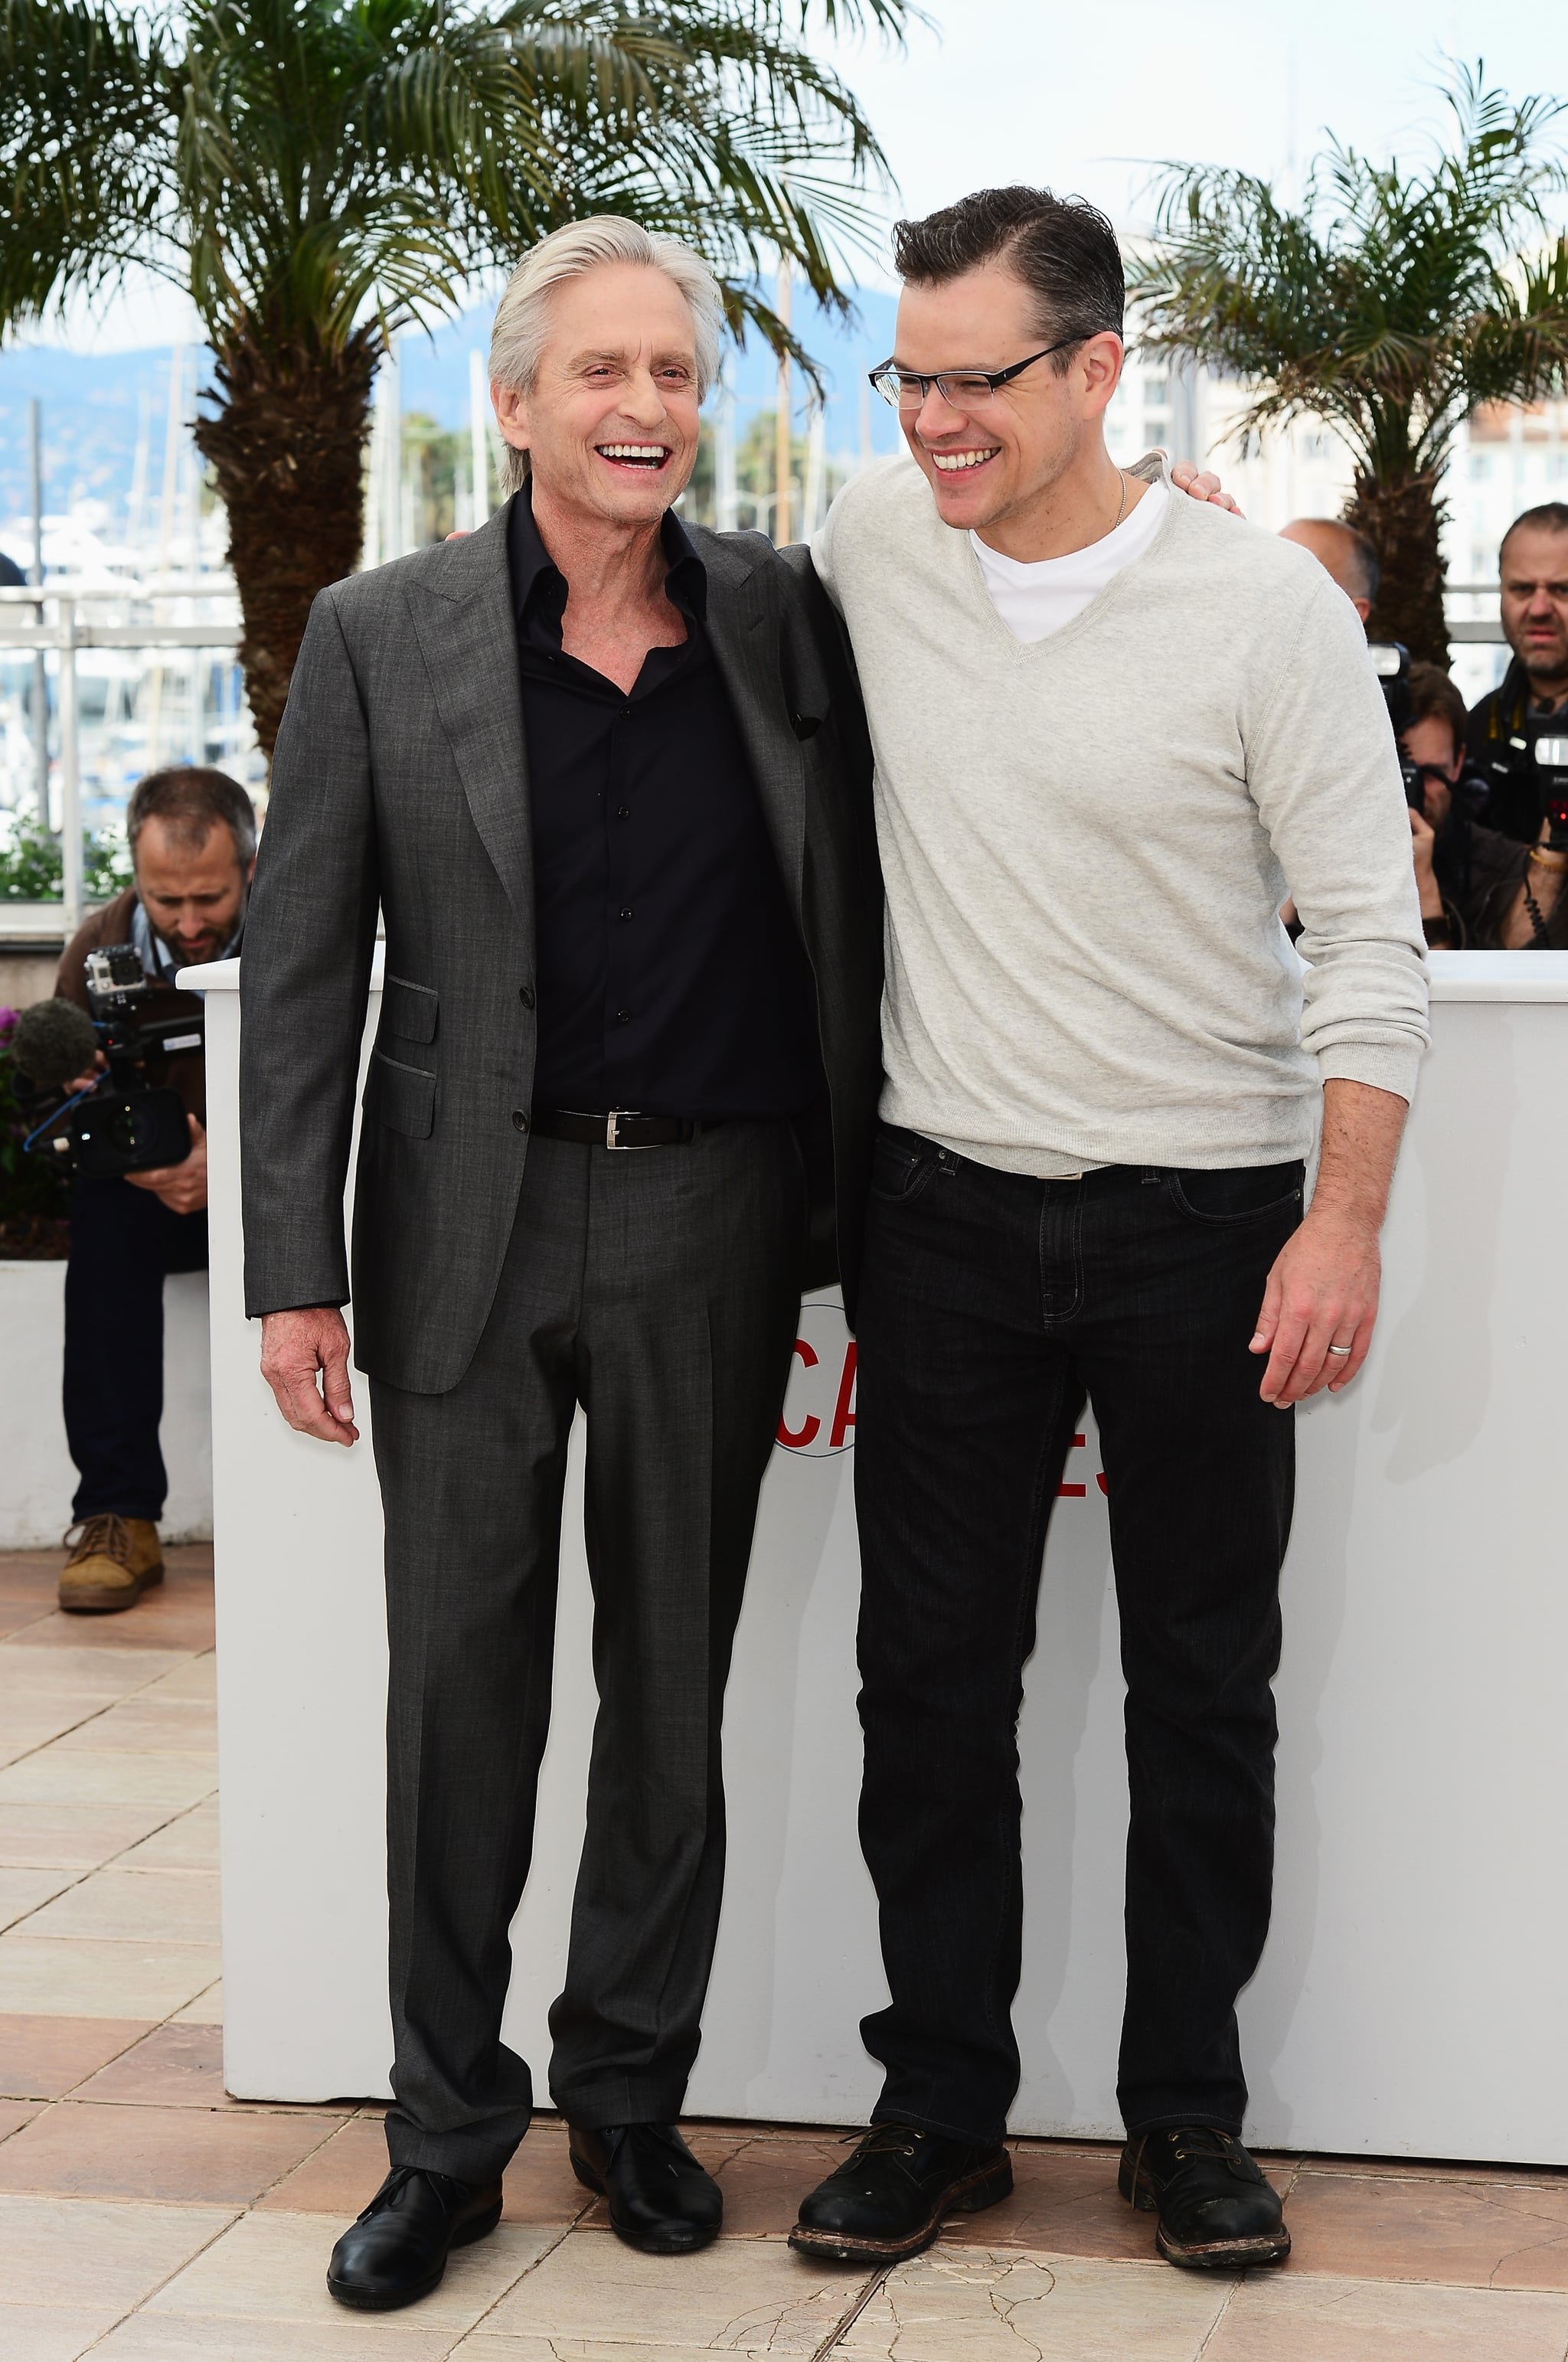 Matt Damon shared a laugh with Michael Douglas at the Behind the Candelabra photocall in Cannes on Tuesday.